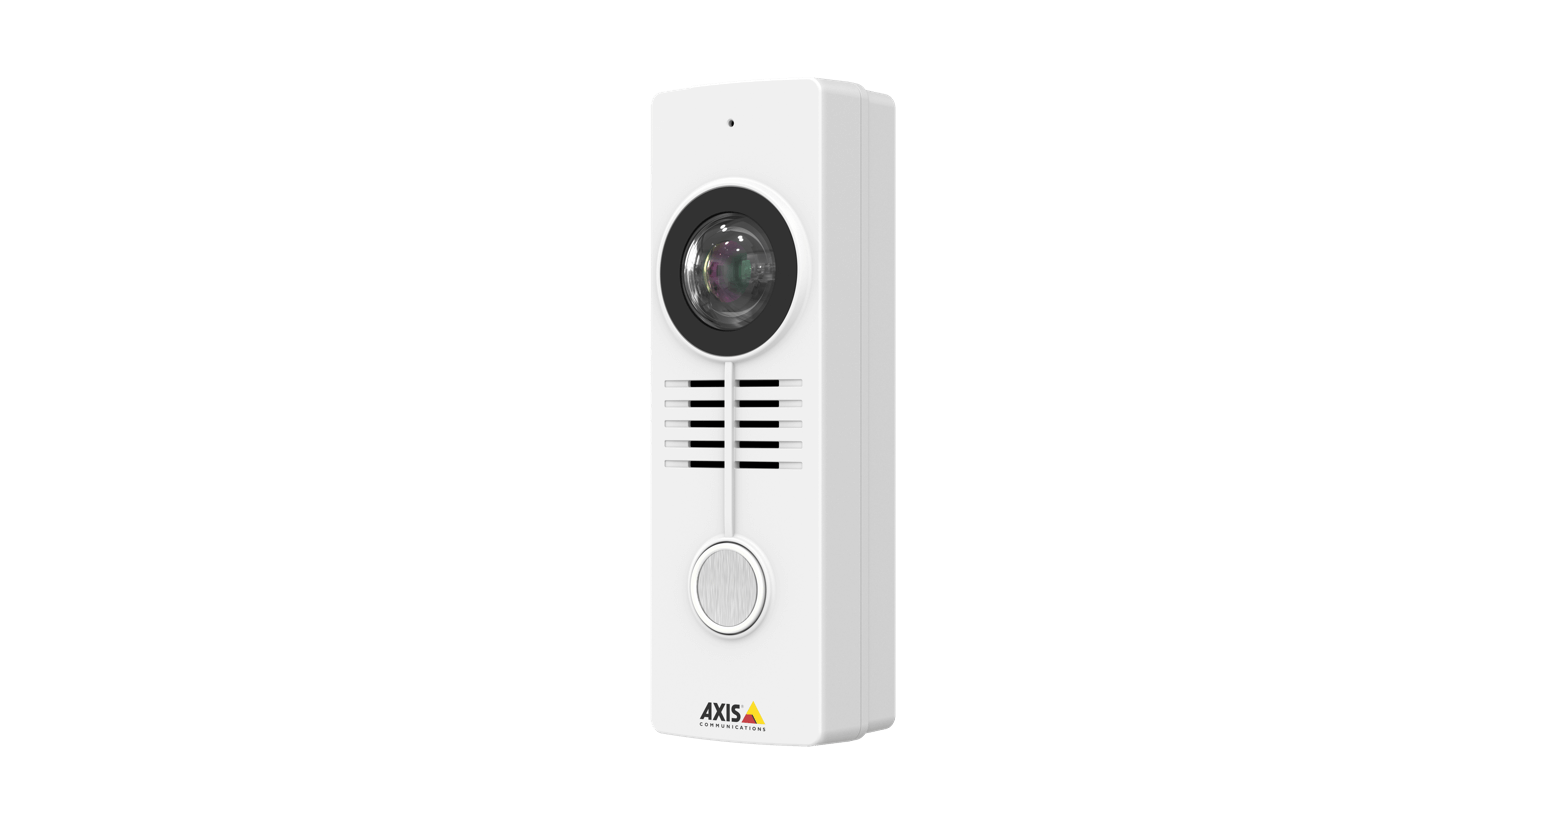 Sales and installation of Premium door intercom & Physical Access Control Systems for Production Studios, Recording Studios, Stage, Live & Nightclub applications.